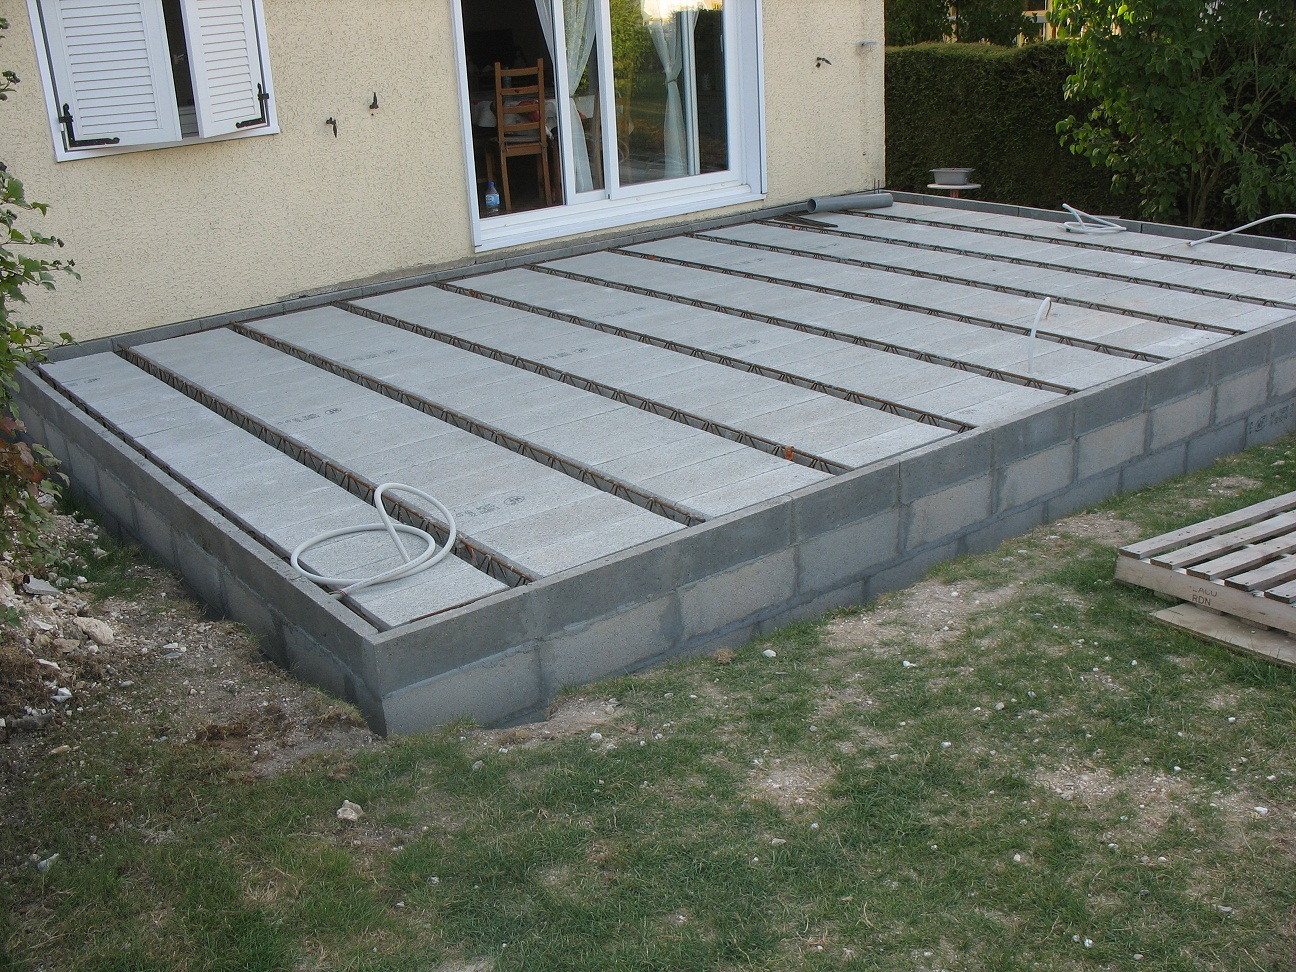 Terrasse en beton for pinterest - Beton decoratif leroy merlin ...